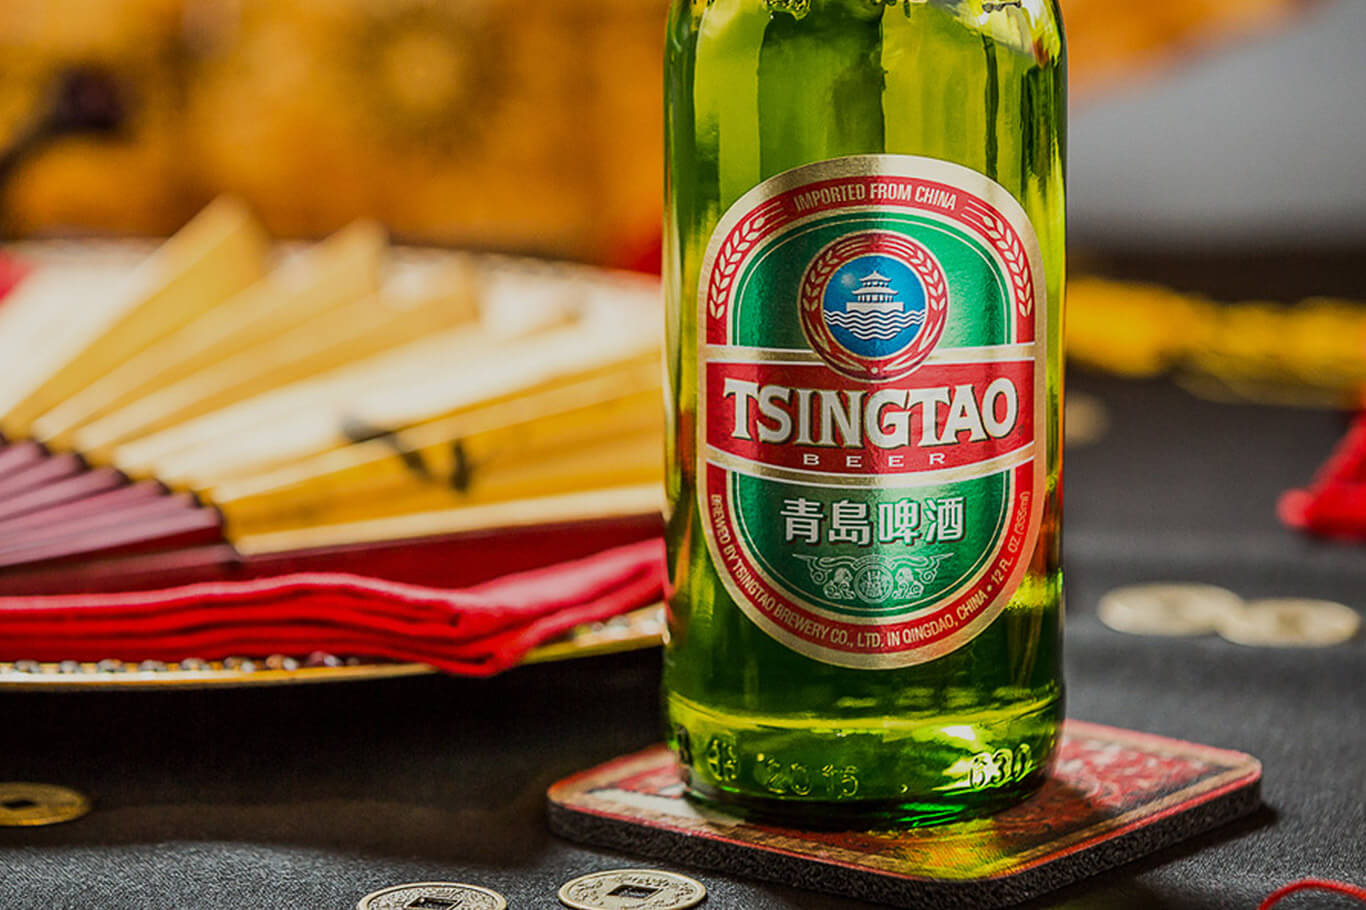 kabookaboo launches Tsingtao website